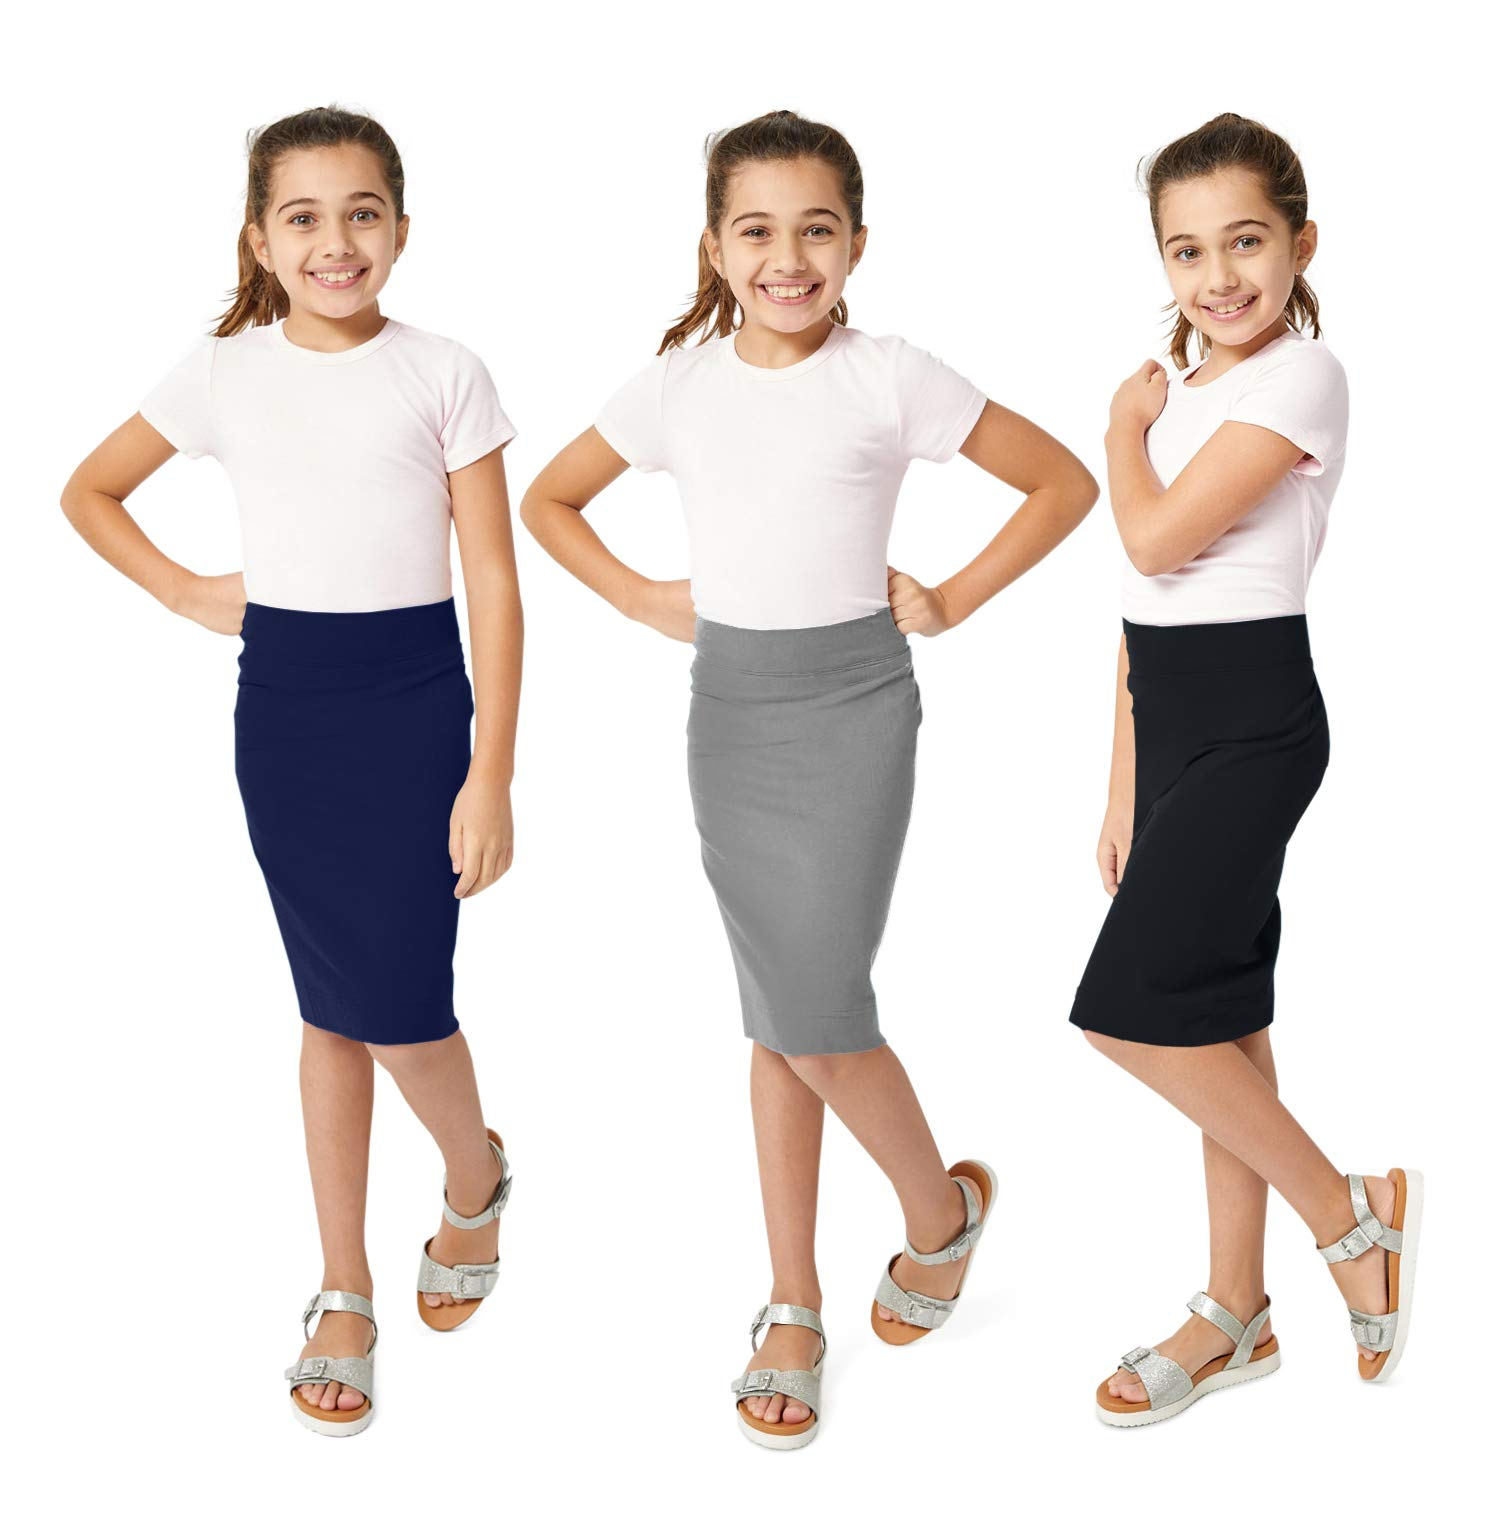 KIDPIK Girls Pencil Skirts (3 Pack) - Multi-Color - (Small (7/8), Grey/Navy/Black)